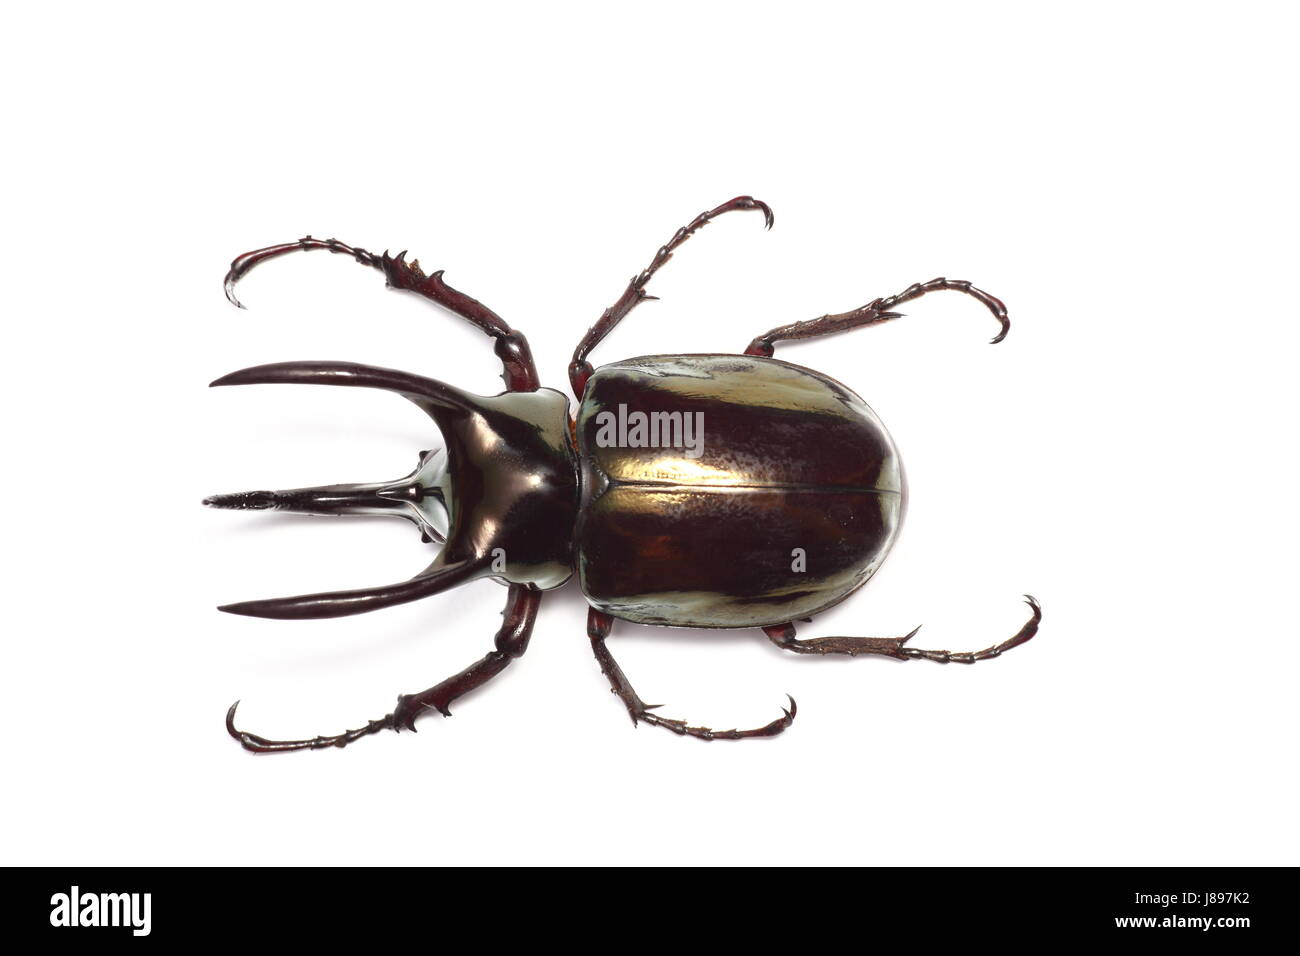 insect, brown, brownish, brunette, asia, horn, beetle, wildlife, atlas, map of - Stock Image